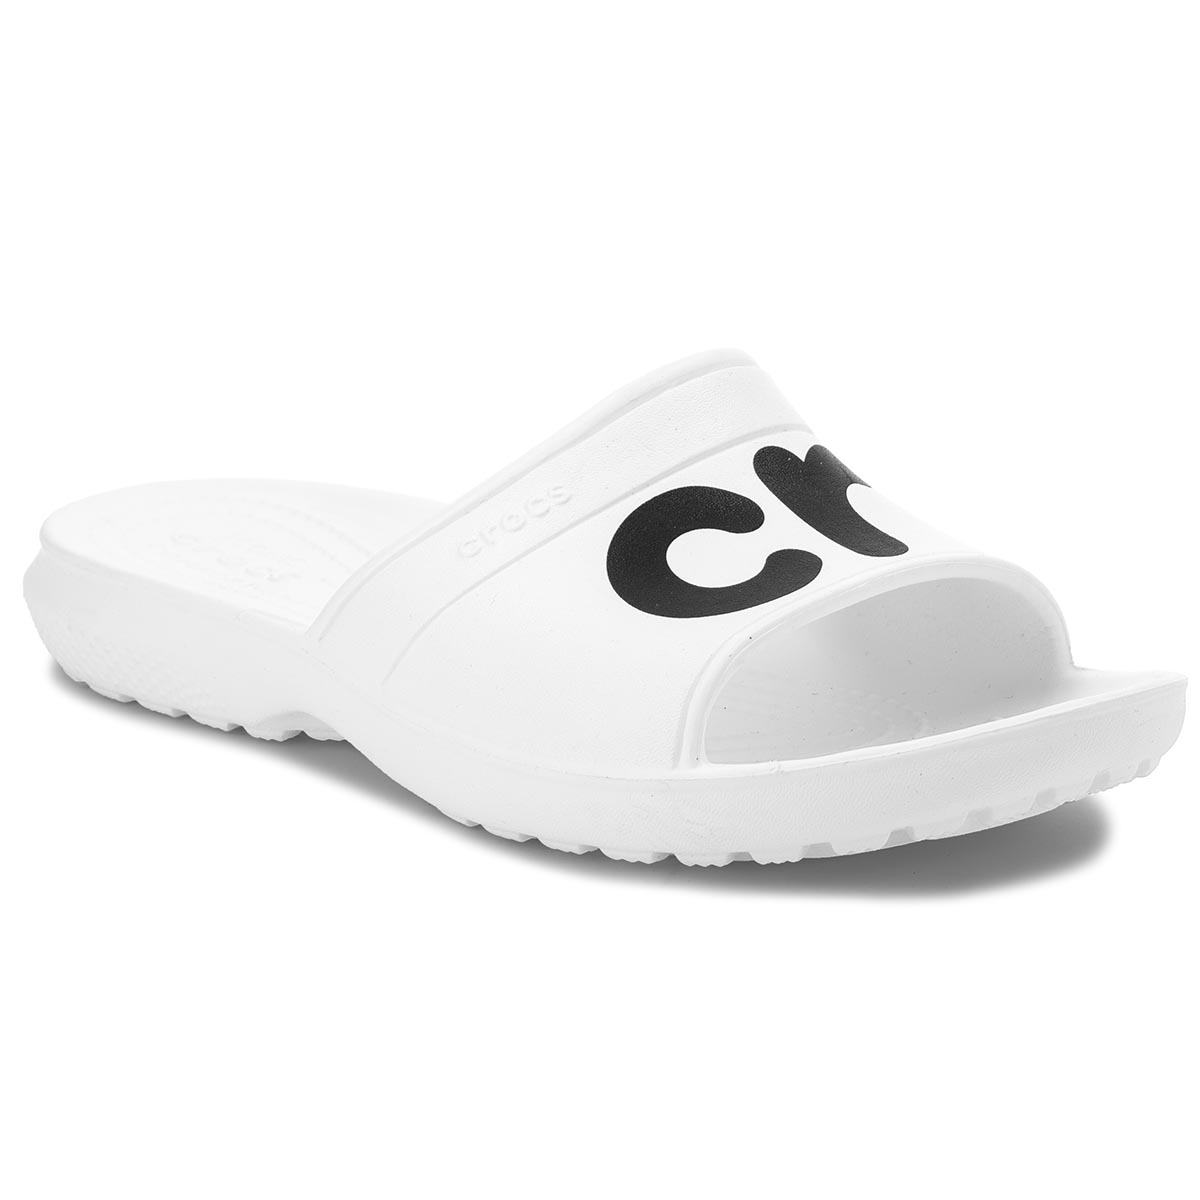 Klapki CROCS - Classic Graphic Slide 204465 White/Black